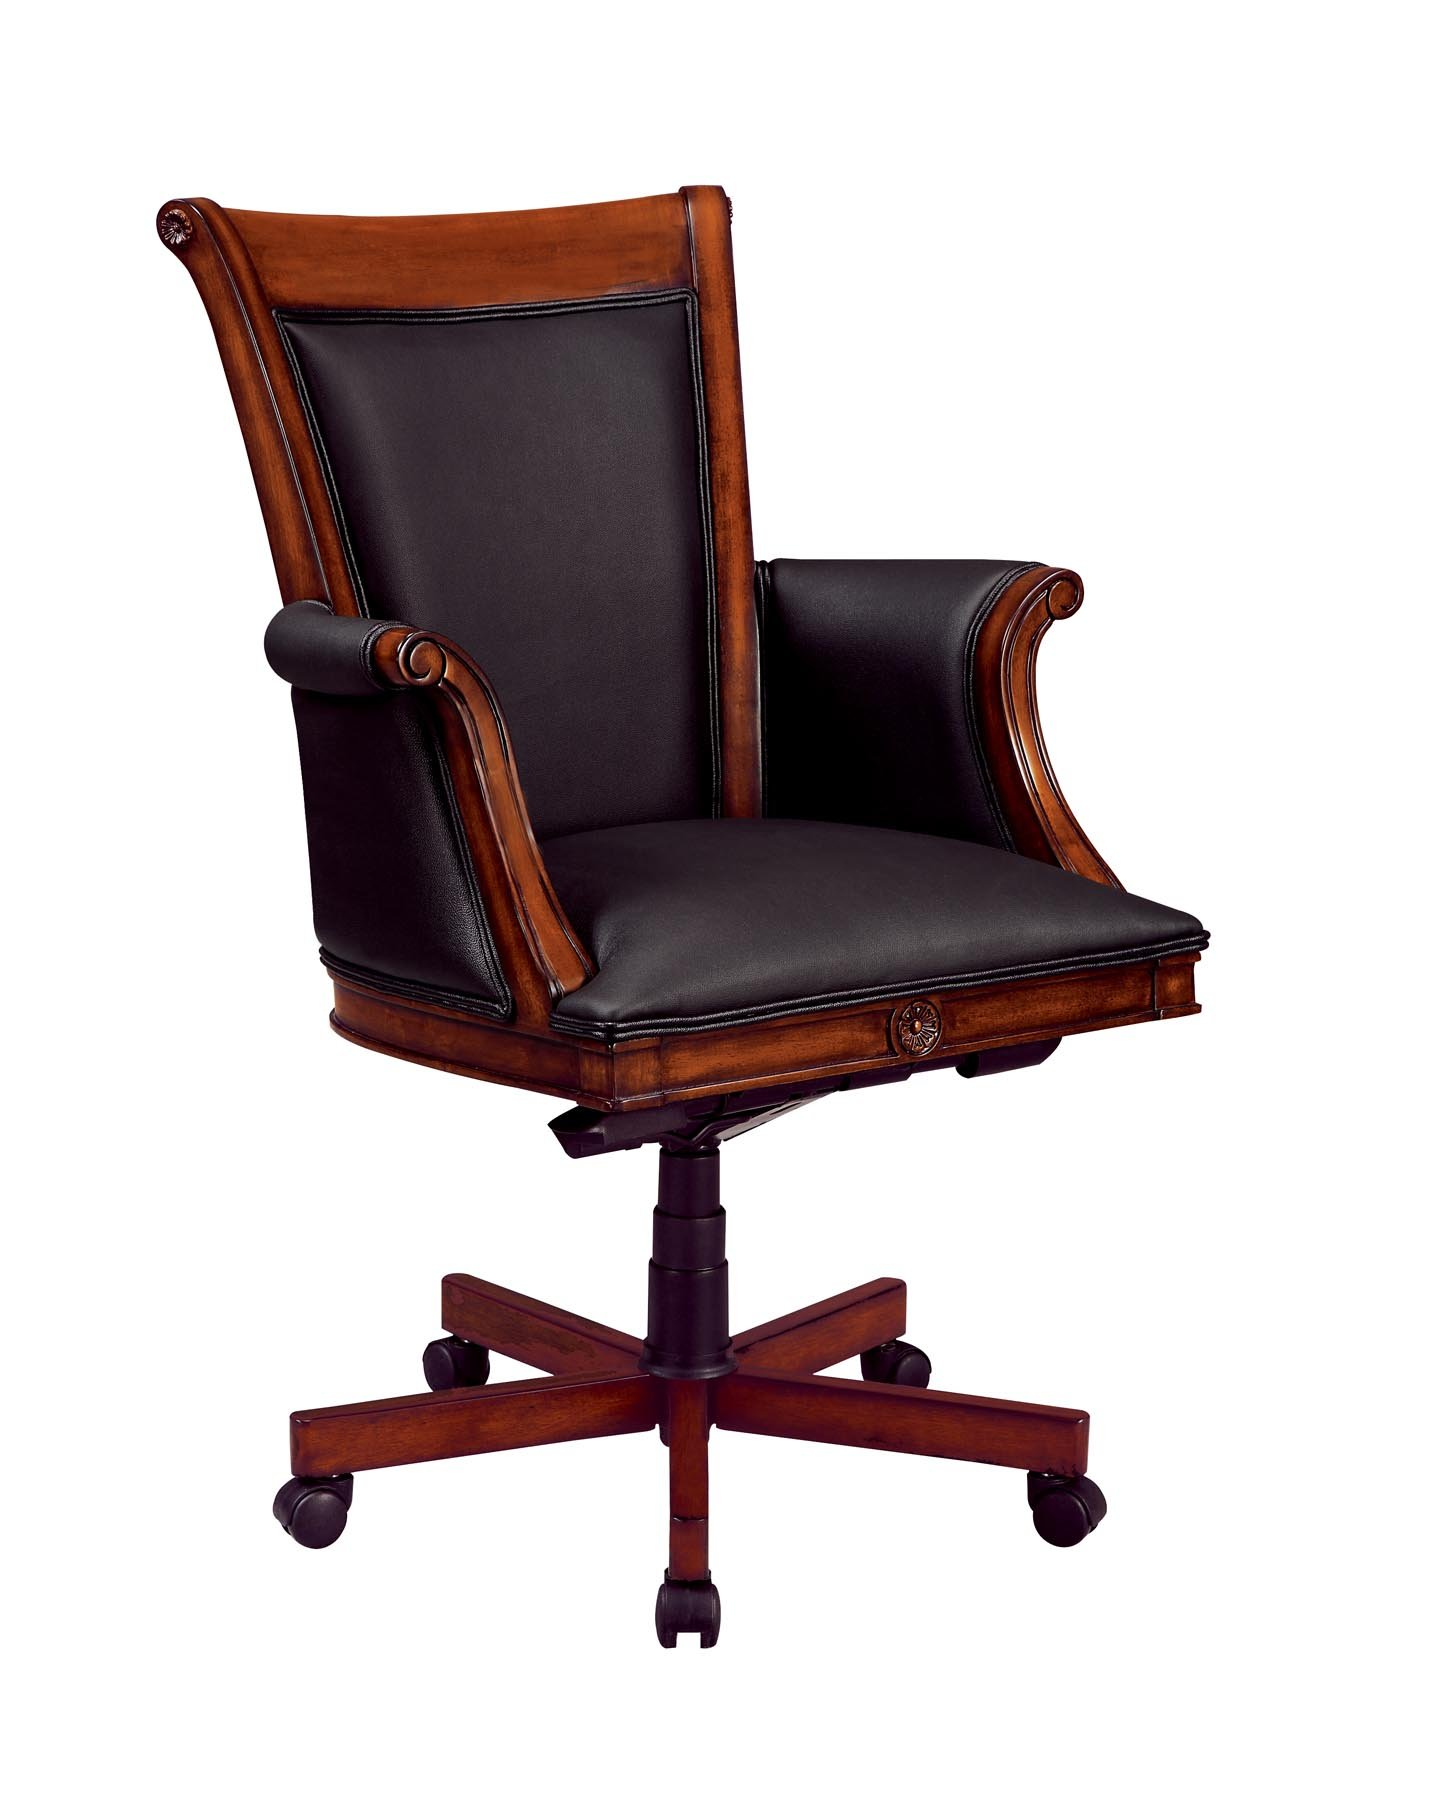 Antigua  Executive High Back Desk Chair